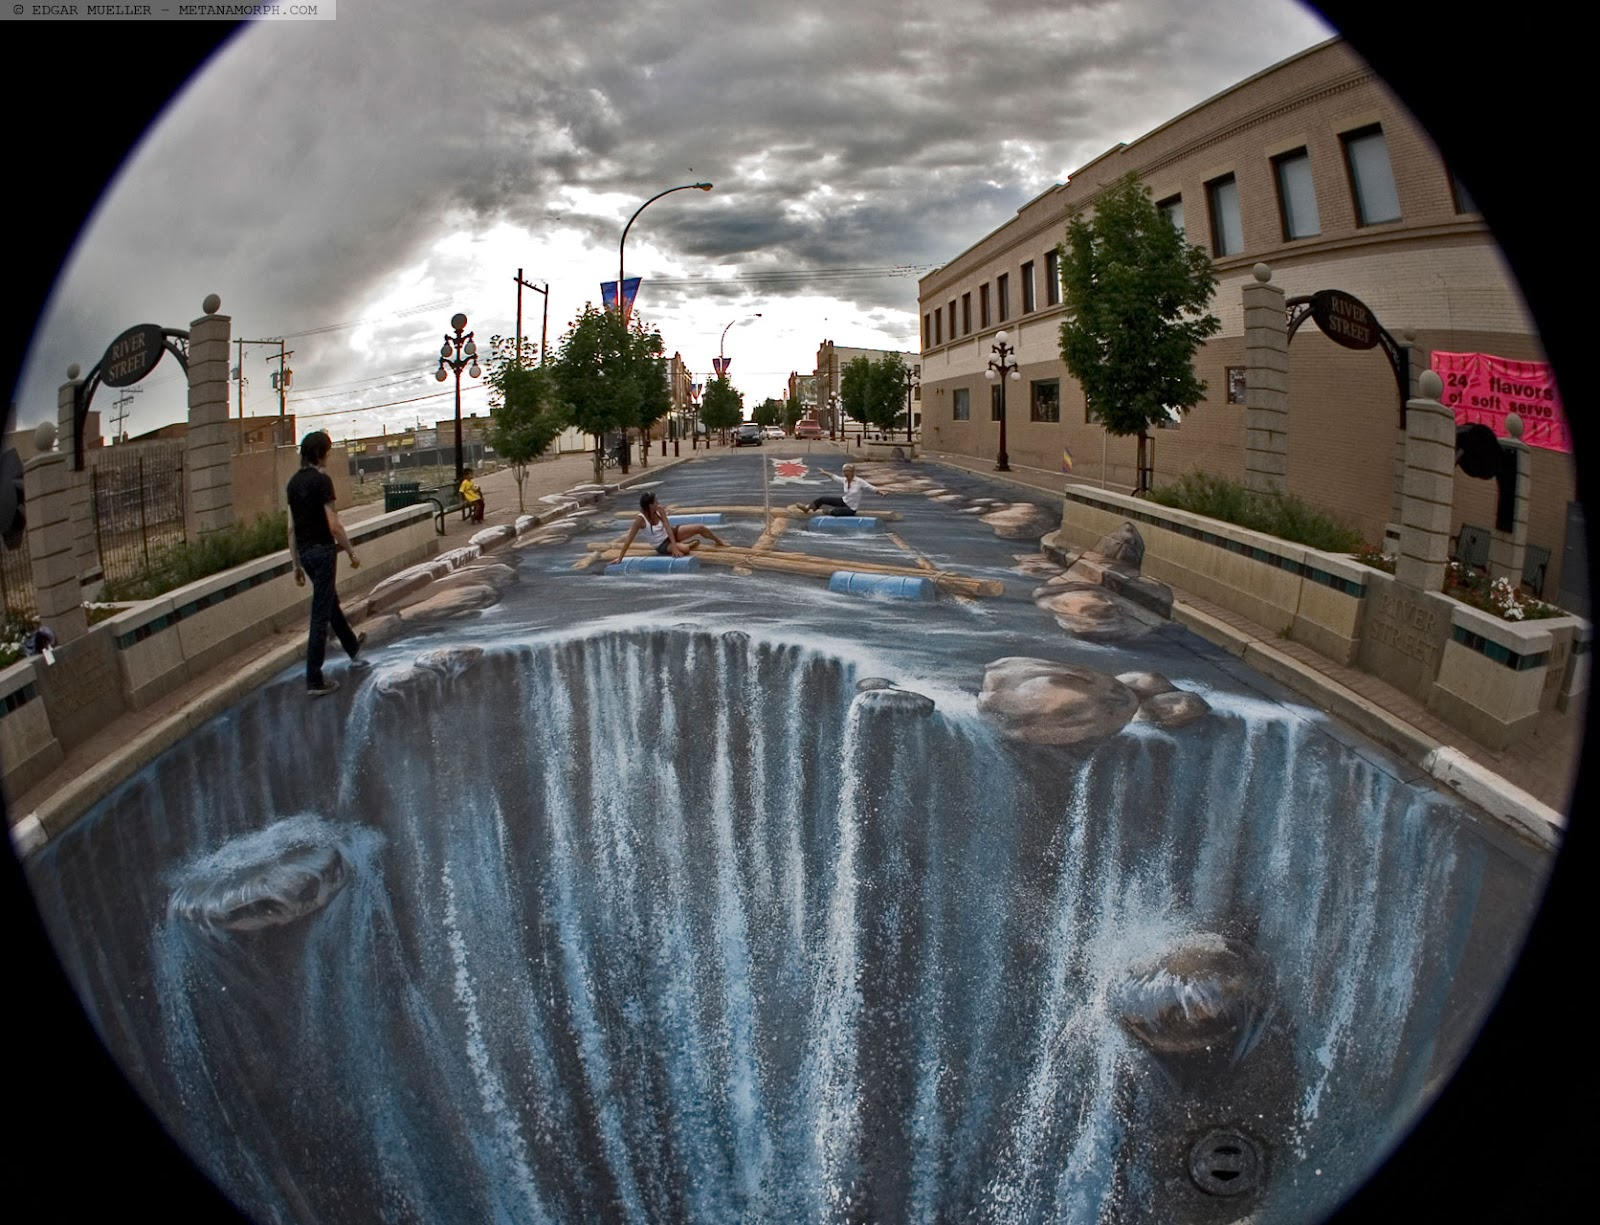 15-The-Waterfall-Edgar-Mueller-metanamorph-Enormous-Street-Art-Drawings-and-Paintings-www-designstack-co